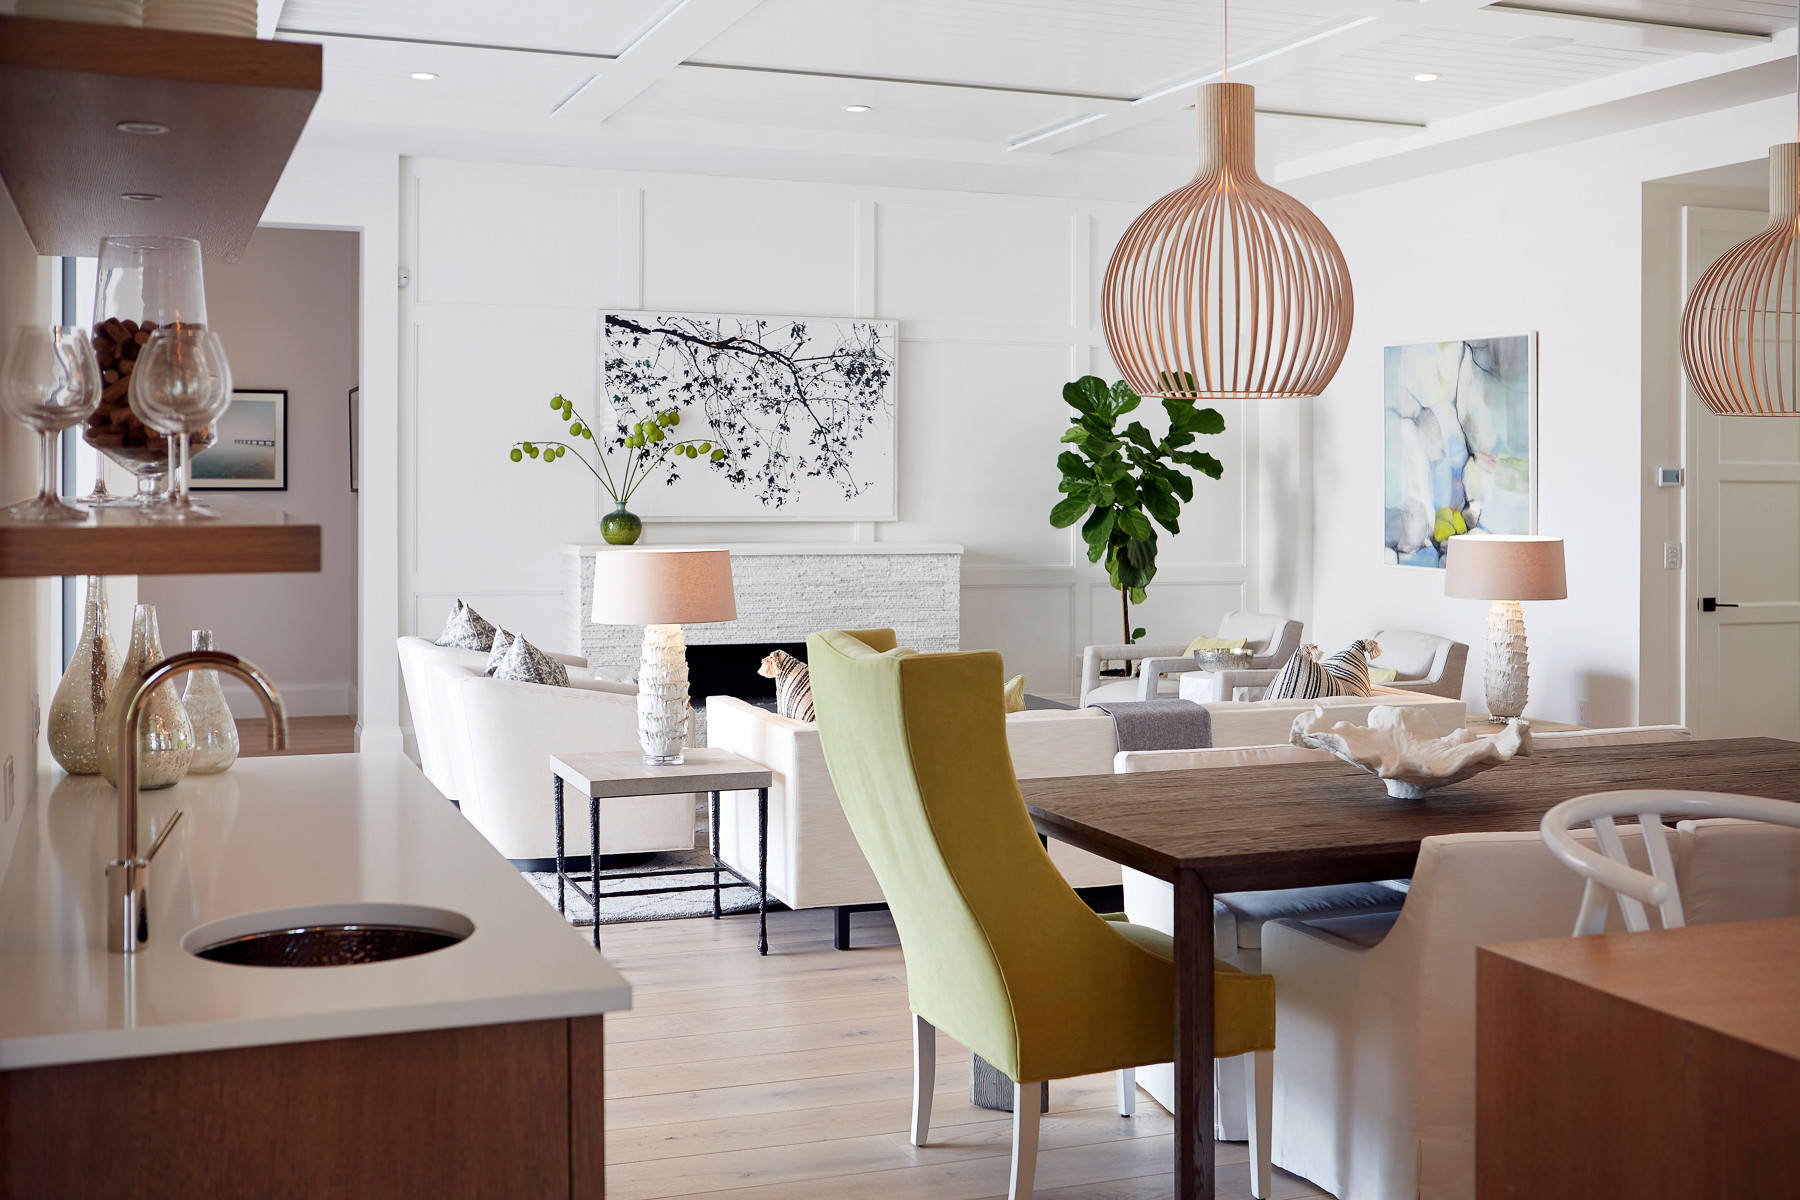 from Kitchen to Dining/Living